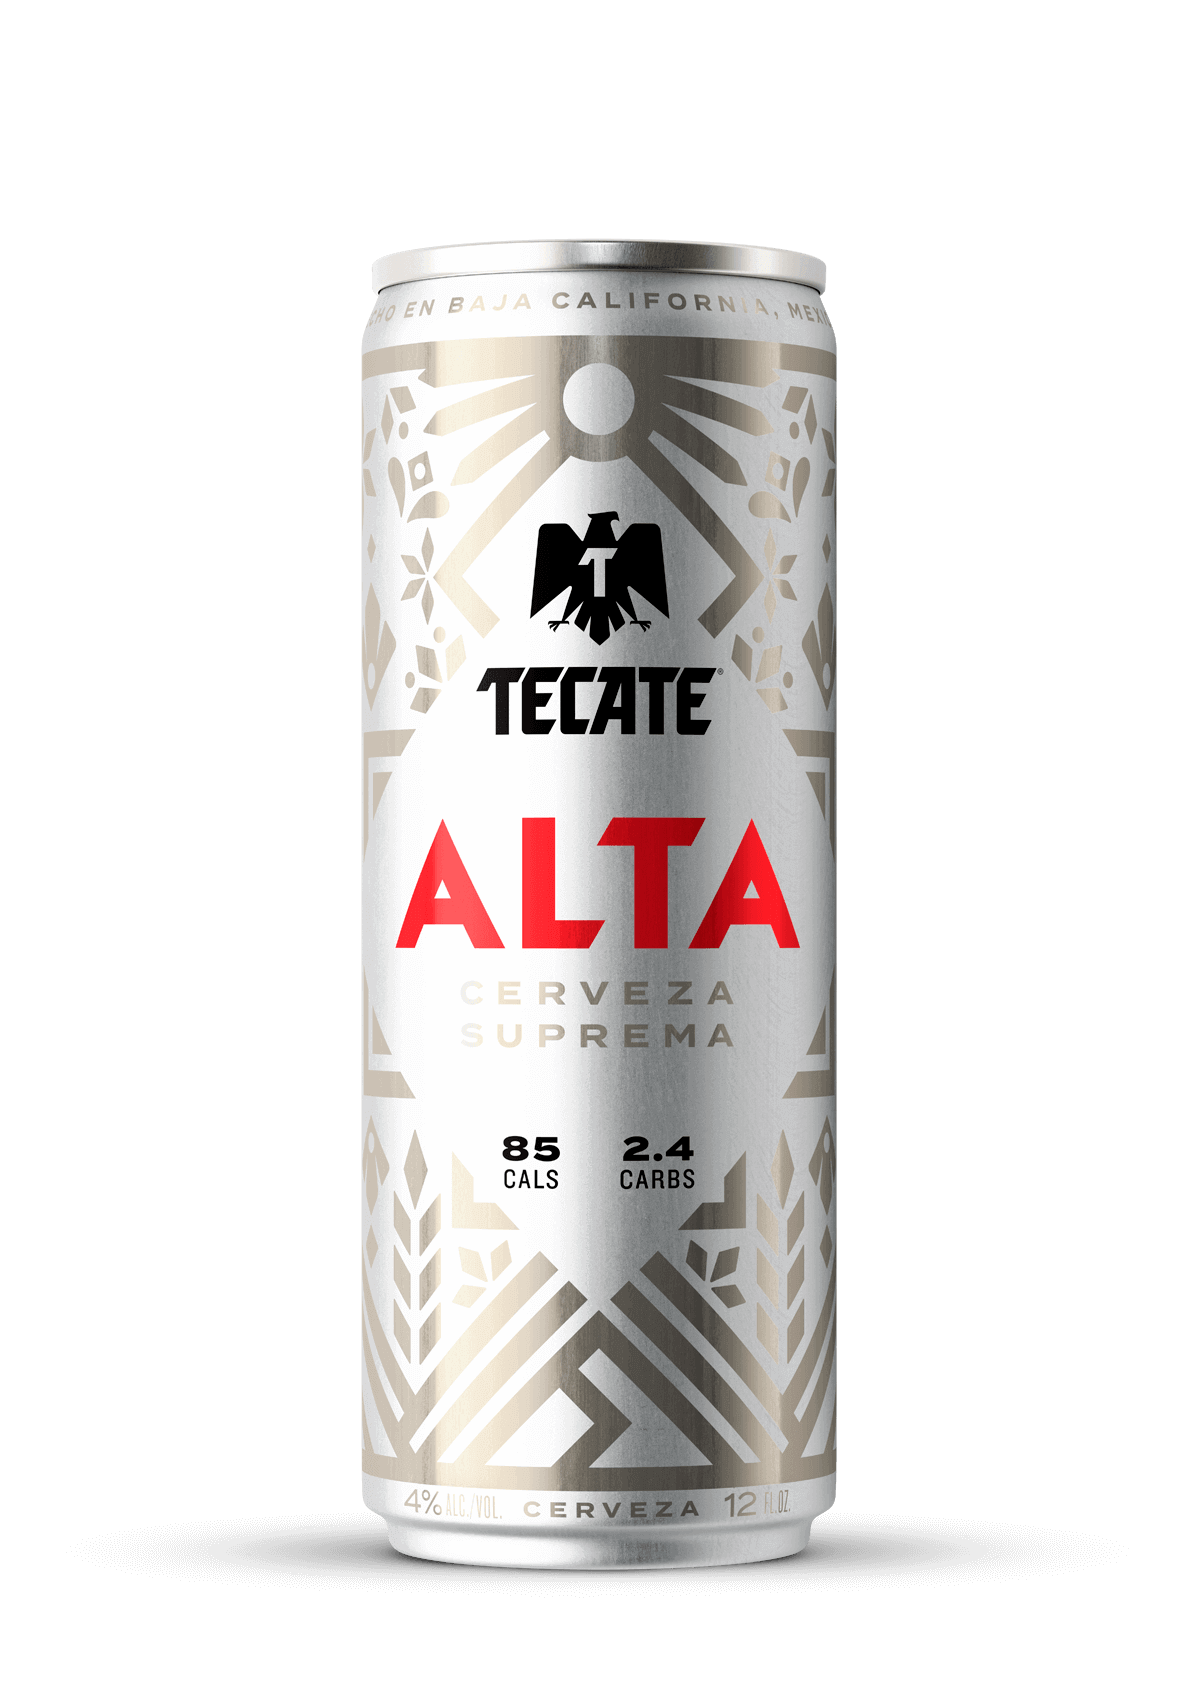 Tecate® Alta, silver can 12fl oz, with Mexican fretwork design. 85 Cals & 2.4 Carbs.